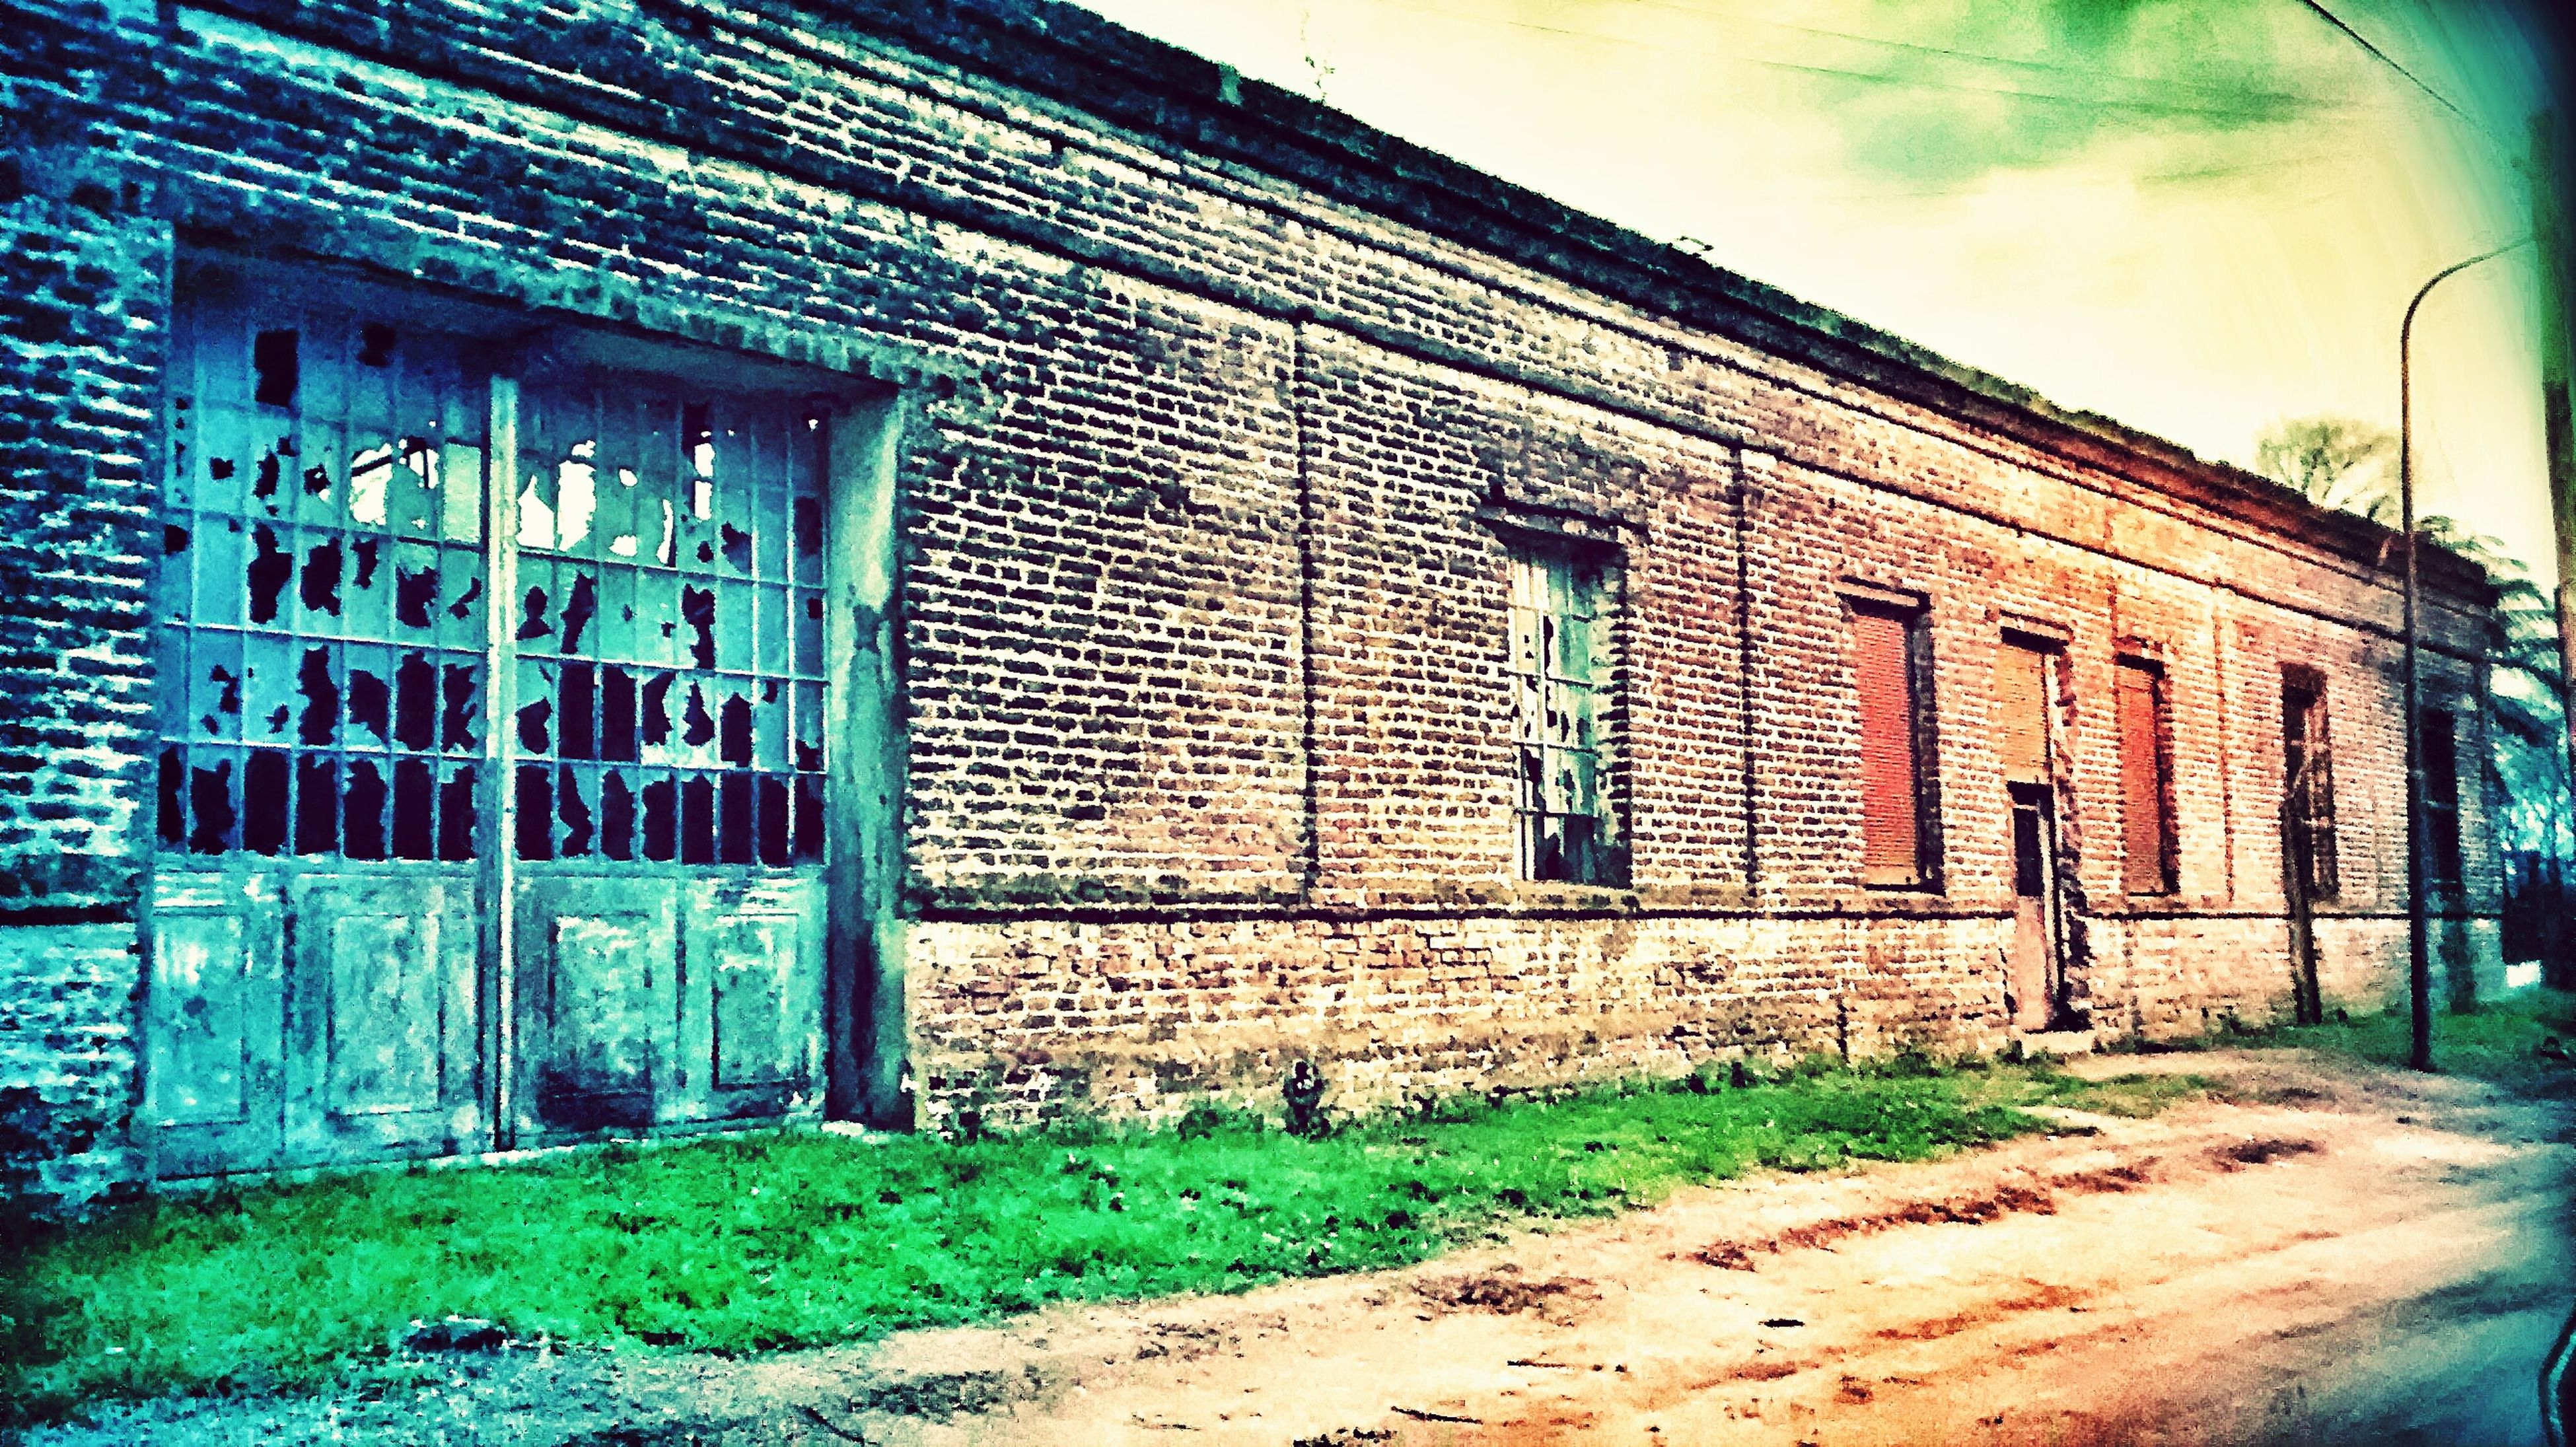 architecture, building exterior, built structure, window, house, door, old, residential structure, brick wall, closed, sky, abandoned, day, outdoors, wall - building feature, residential building, weathered, facade, no people, building